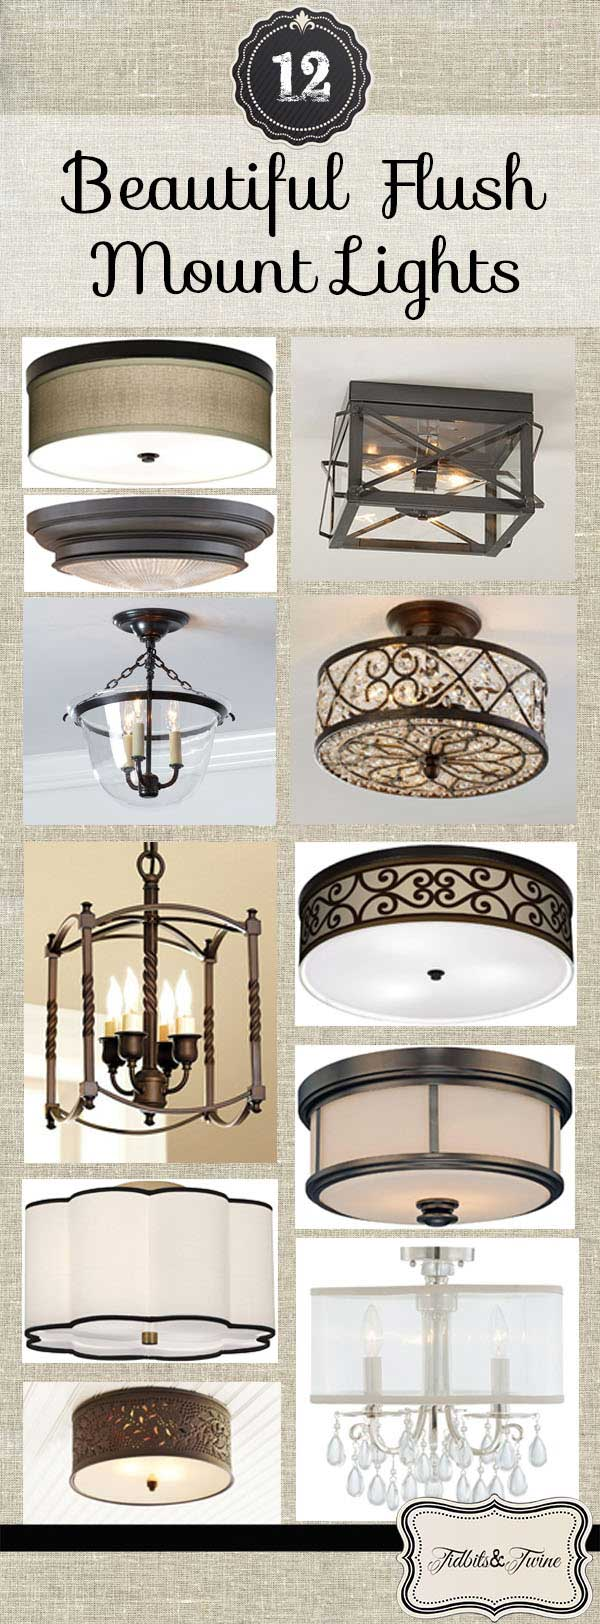 Ceiling Mounted Foyer Lights : Flush mount light fixtures tidbits twine